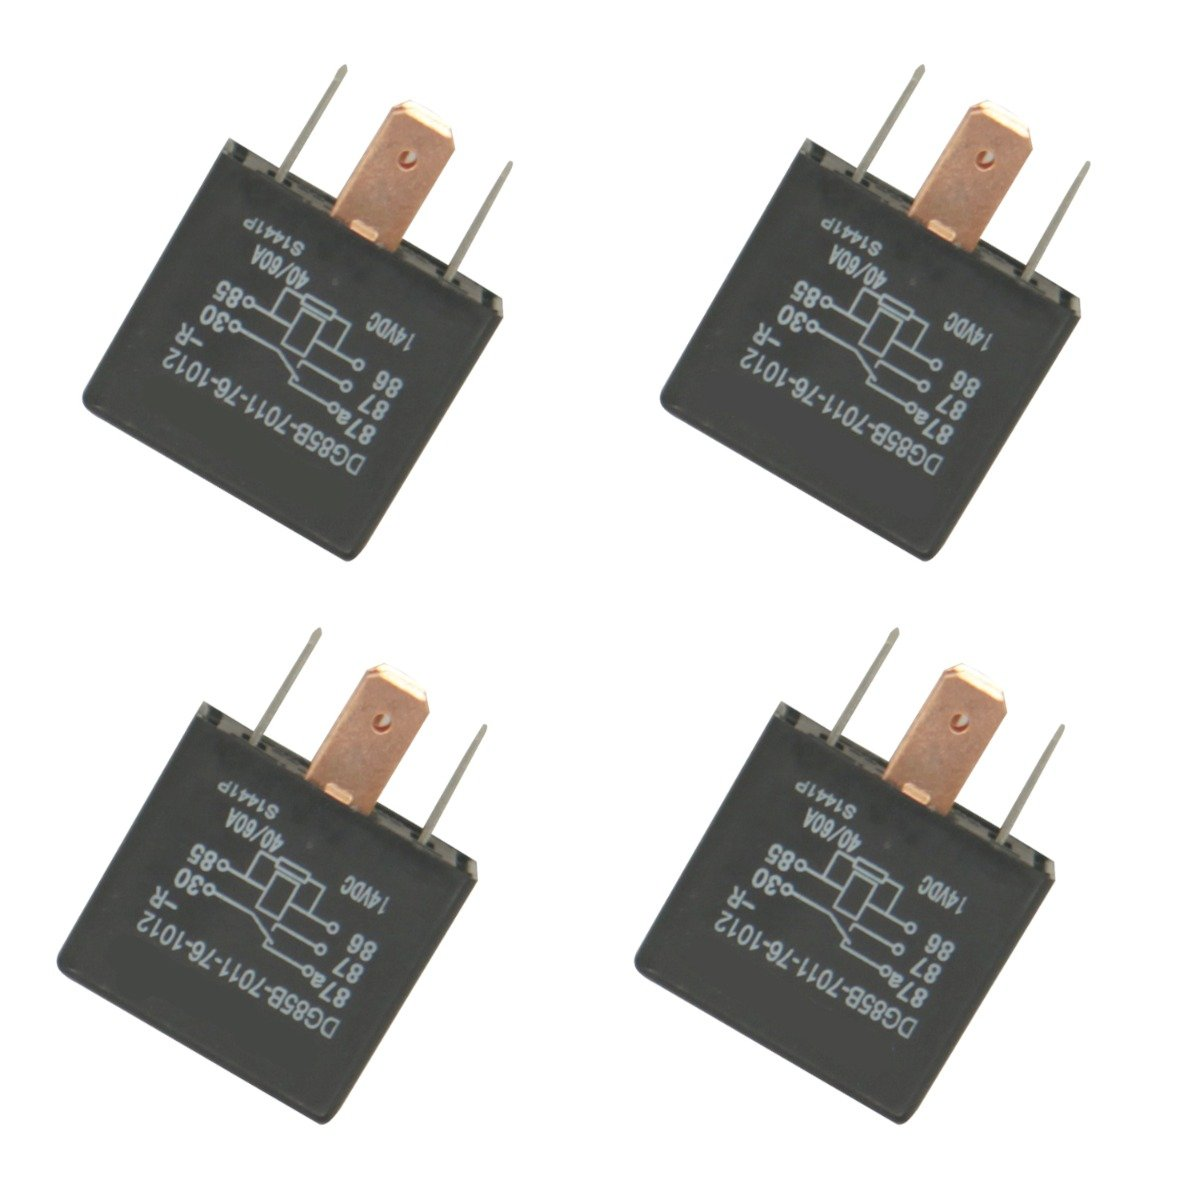 Relay Switch Fuse Panel 6679820 4PCS Compatible with Bobcat Loader 463 553 751 753 763 773 863 864 873 883 963 A220 A300 A770